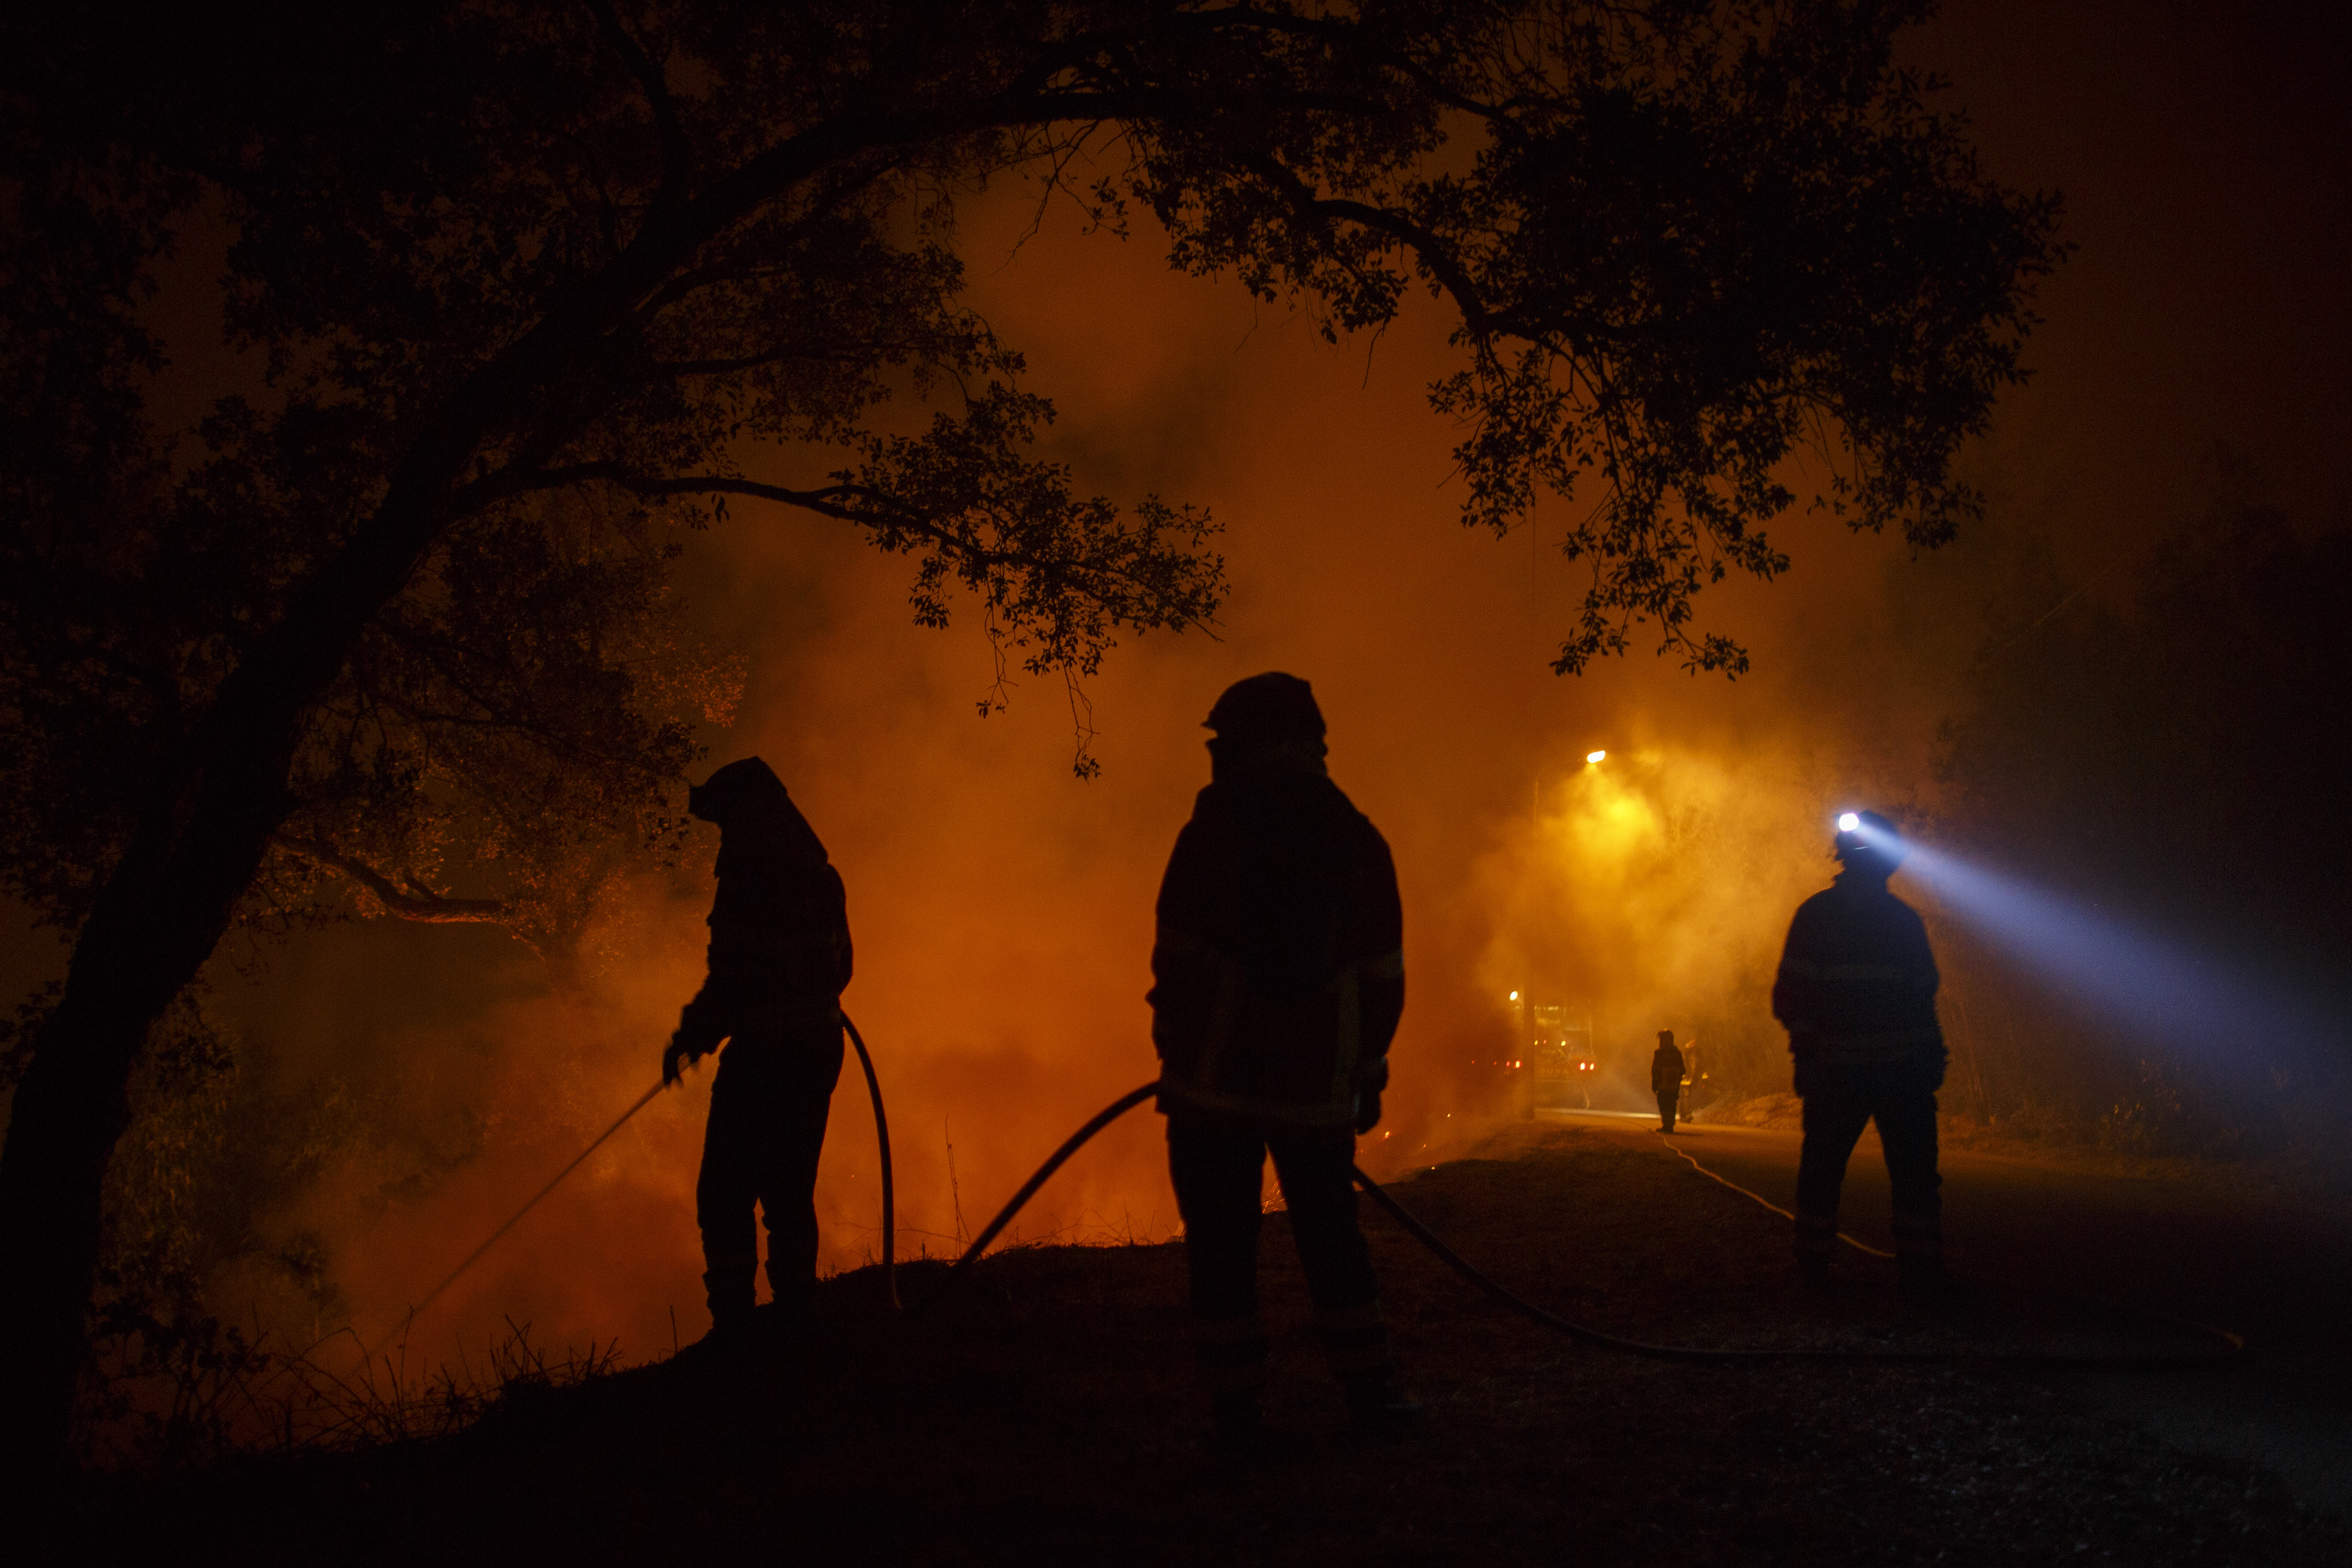 Firefighters battle a forest wildfire at Vilarinho village, near Lousa, on October 16, 2017 in the Coimbra region of Portugal.